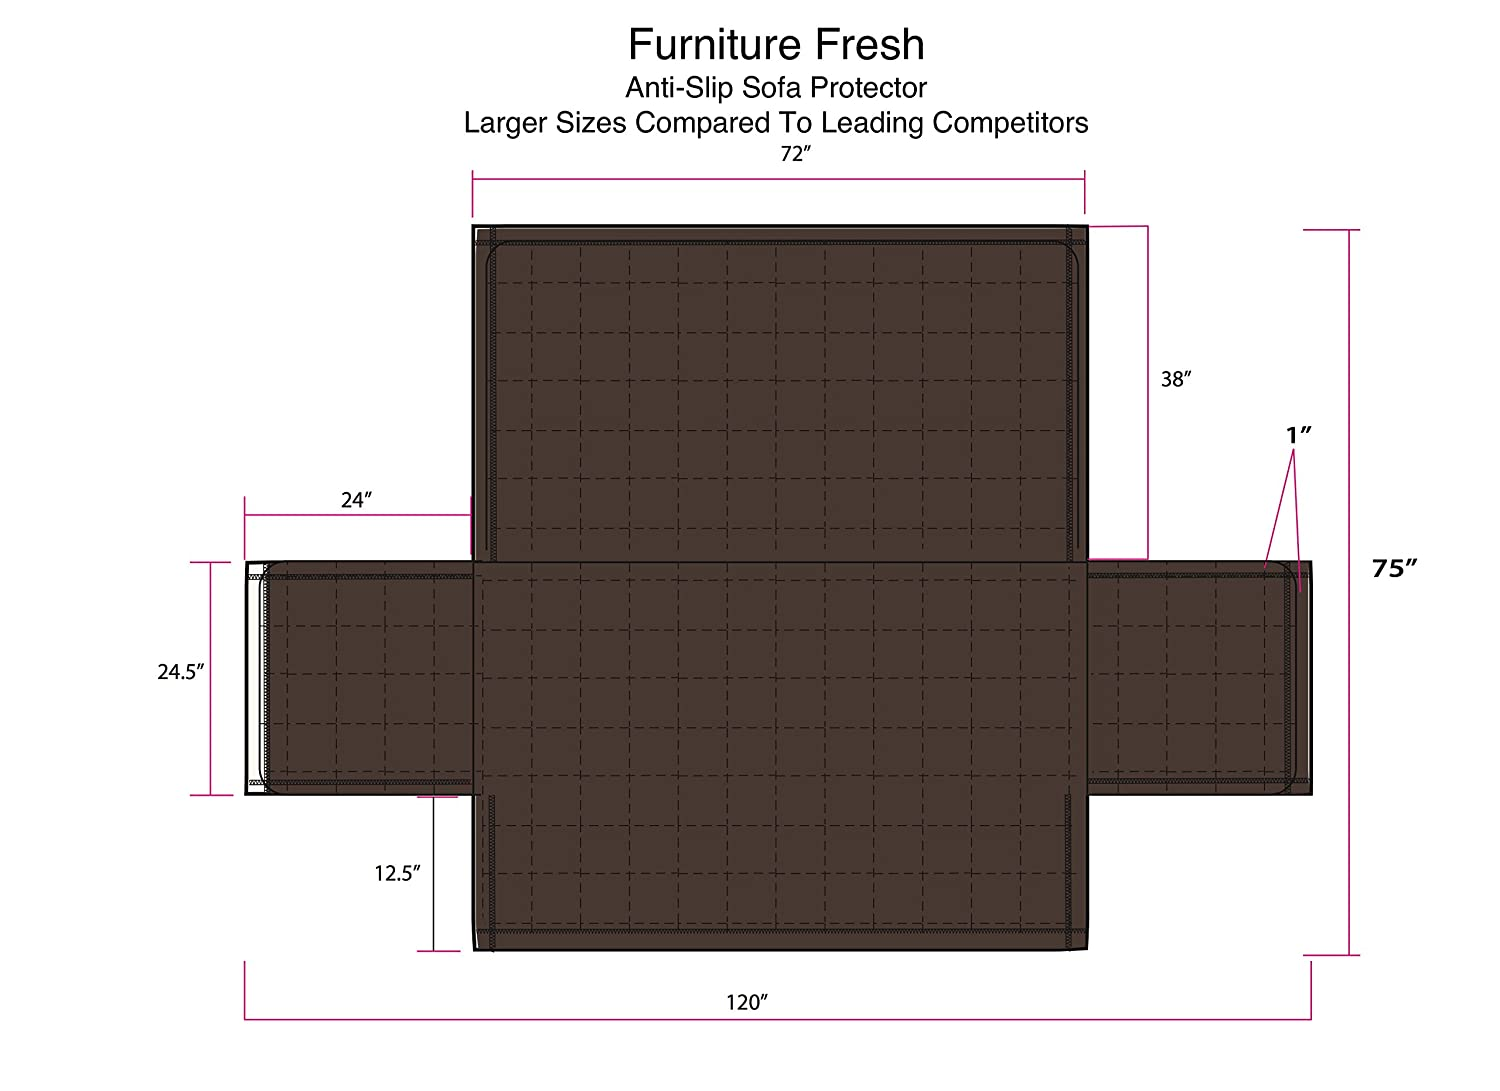 Furniture Fresh XL Sofa, Chocolate New and Improved Anti-Slip Grip Furniture Protector with Stay Put Straps and Water Resistant Microsuede Fabric